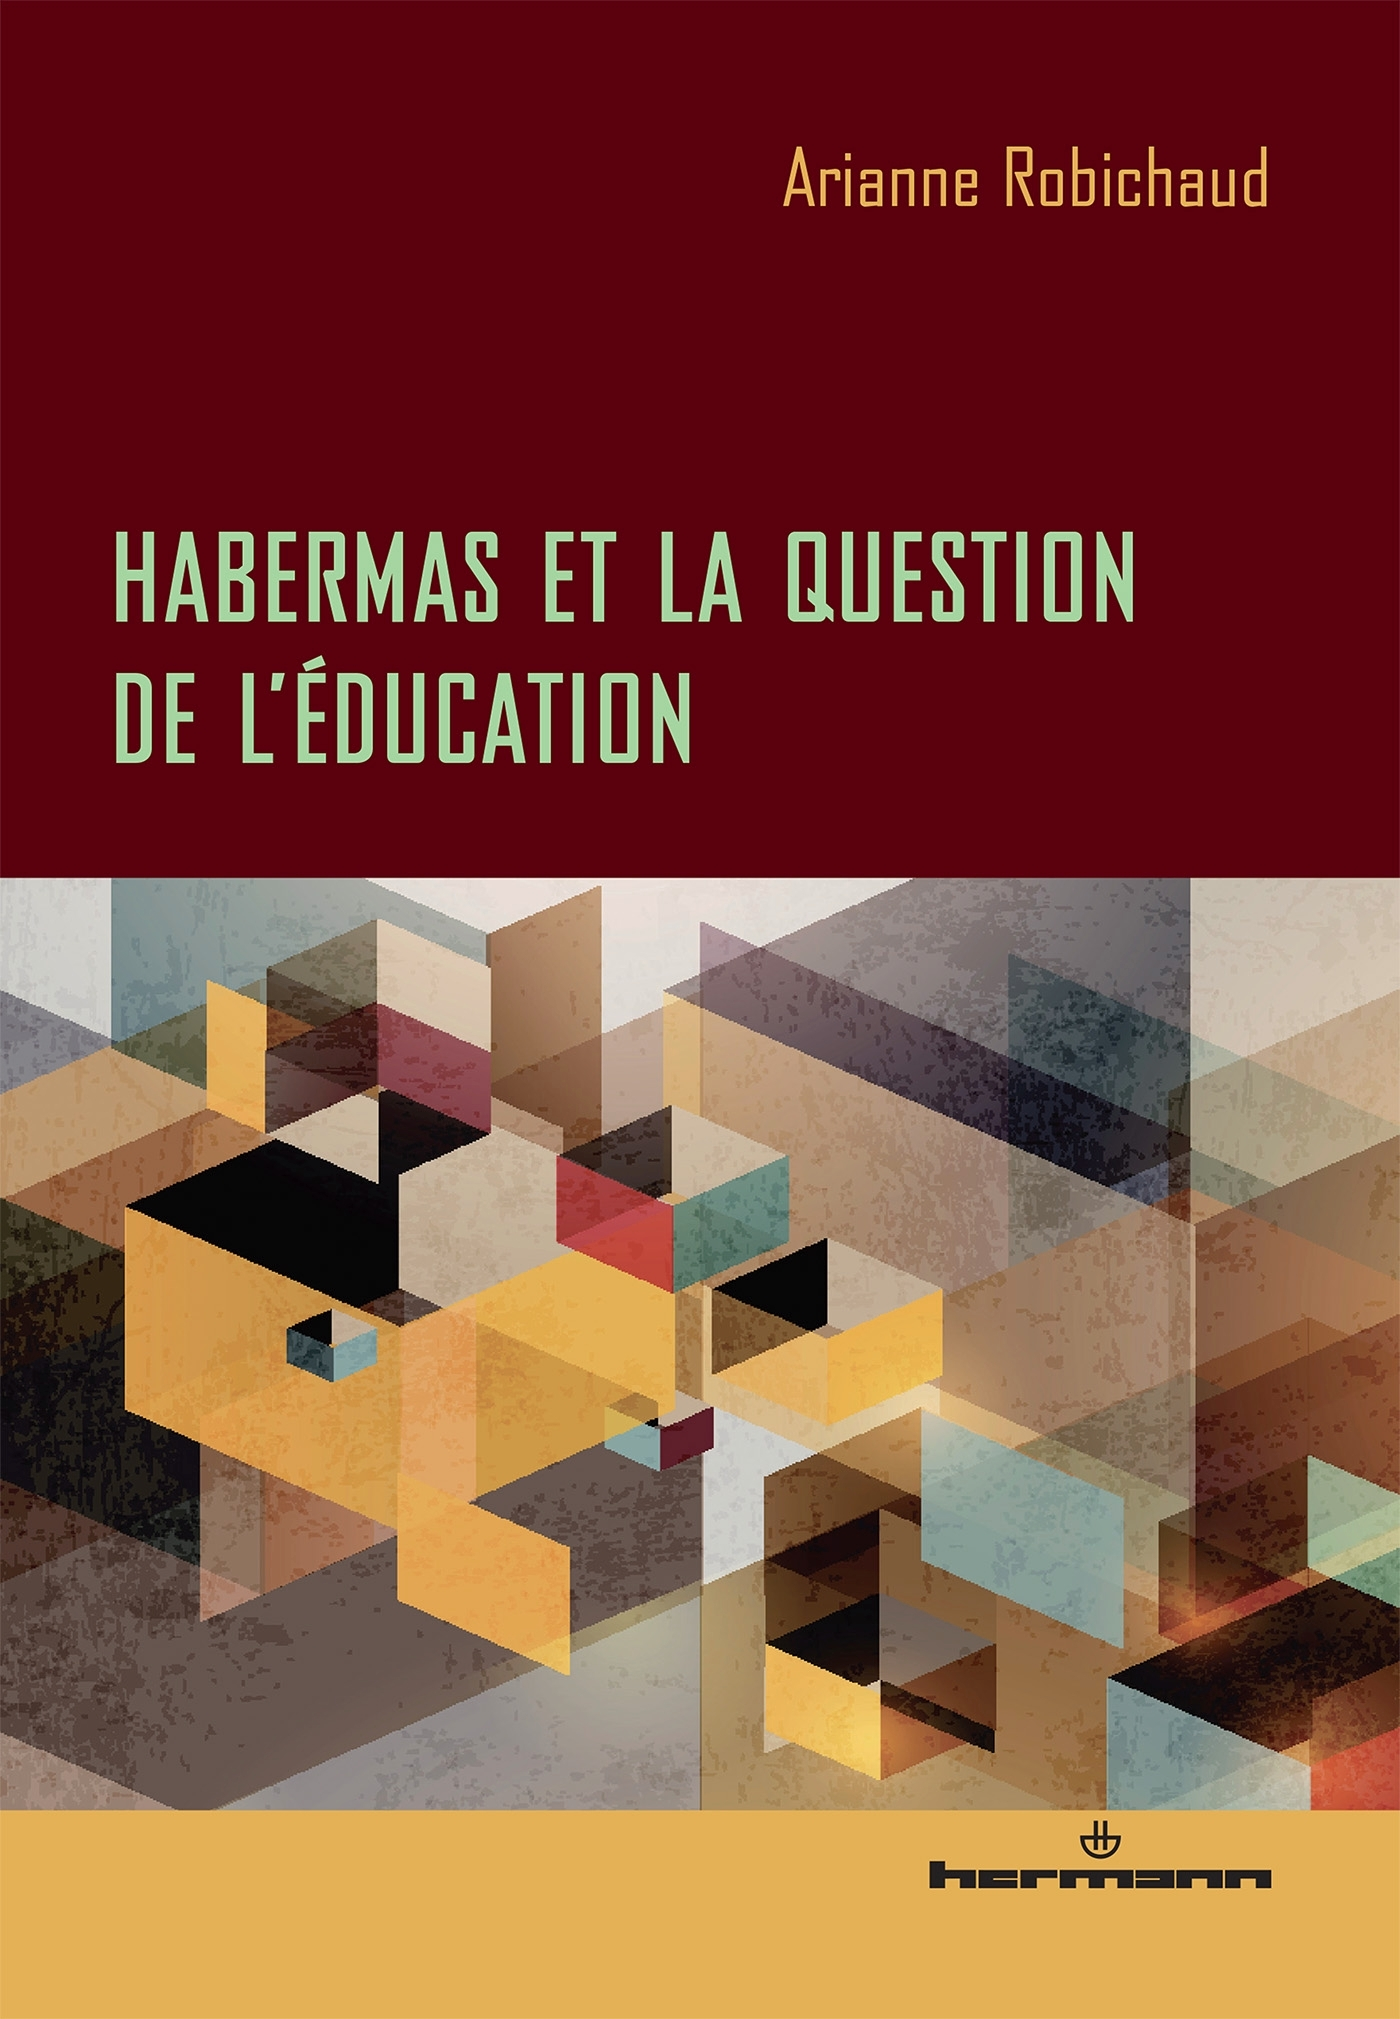 HABERMAS ET LA QUESTION DE L'EDUCATION